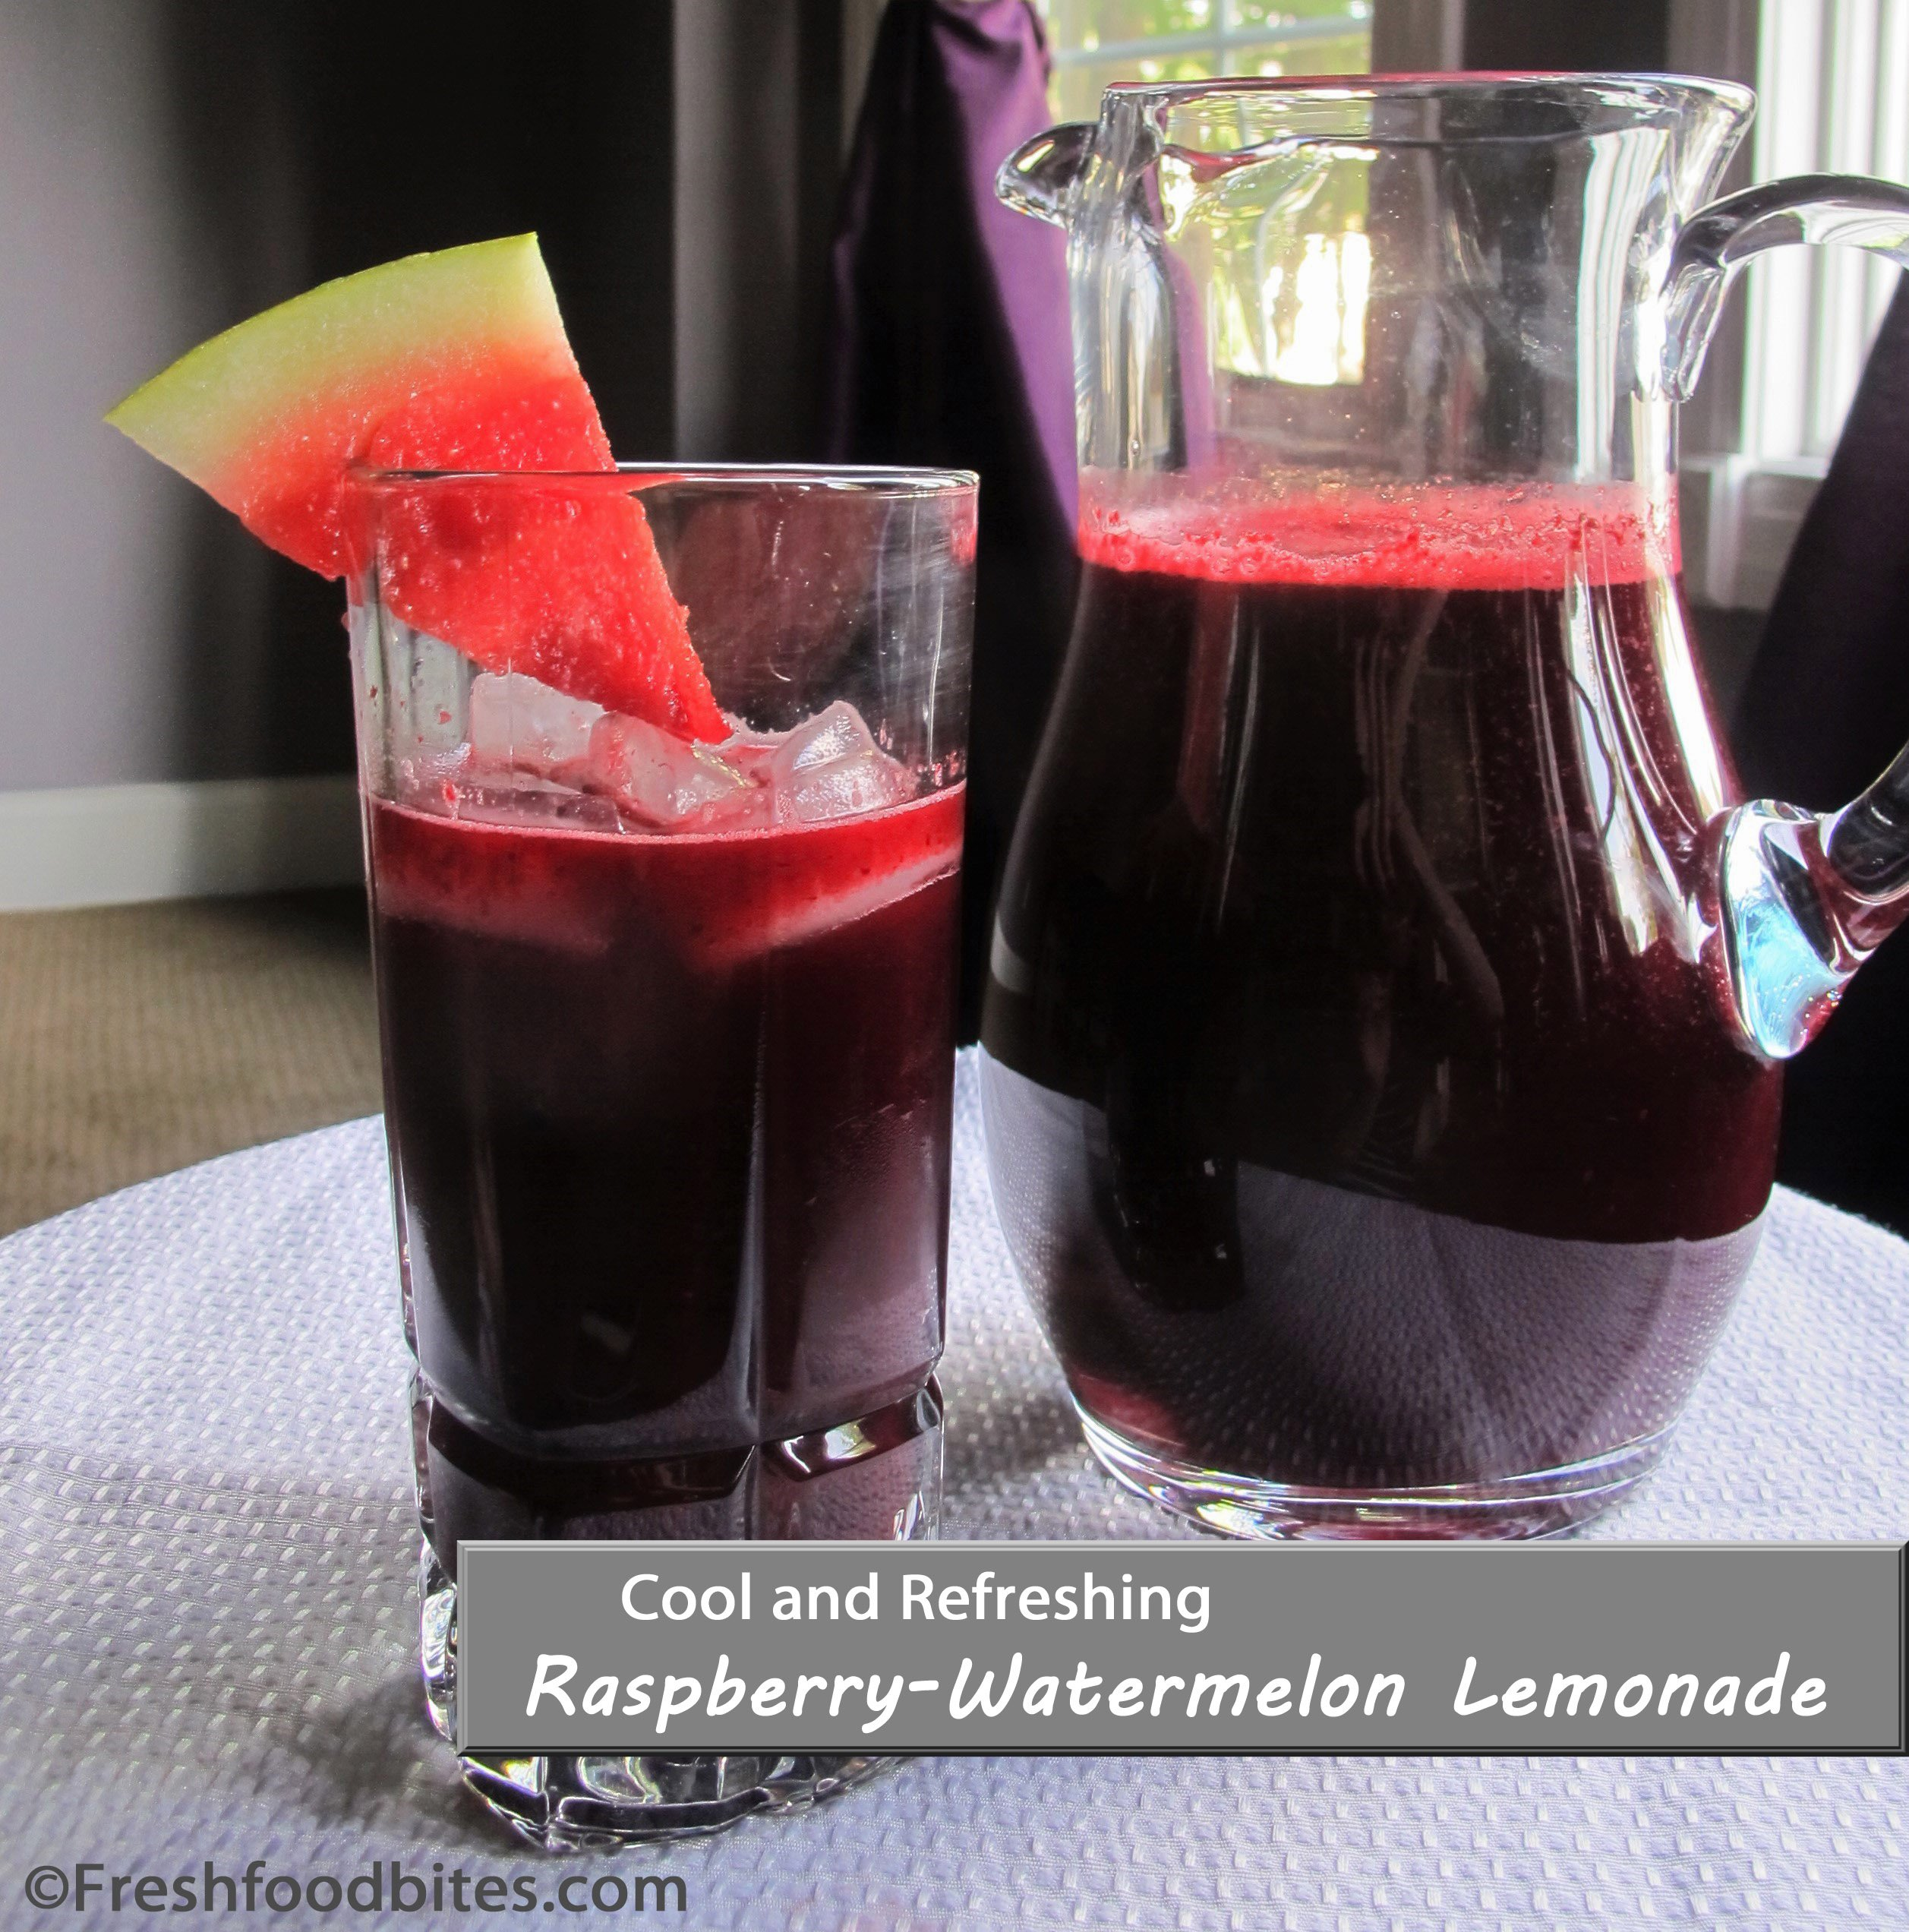 Raspberry-Watermelon Lemonade